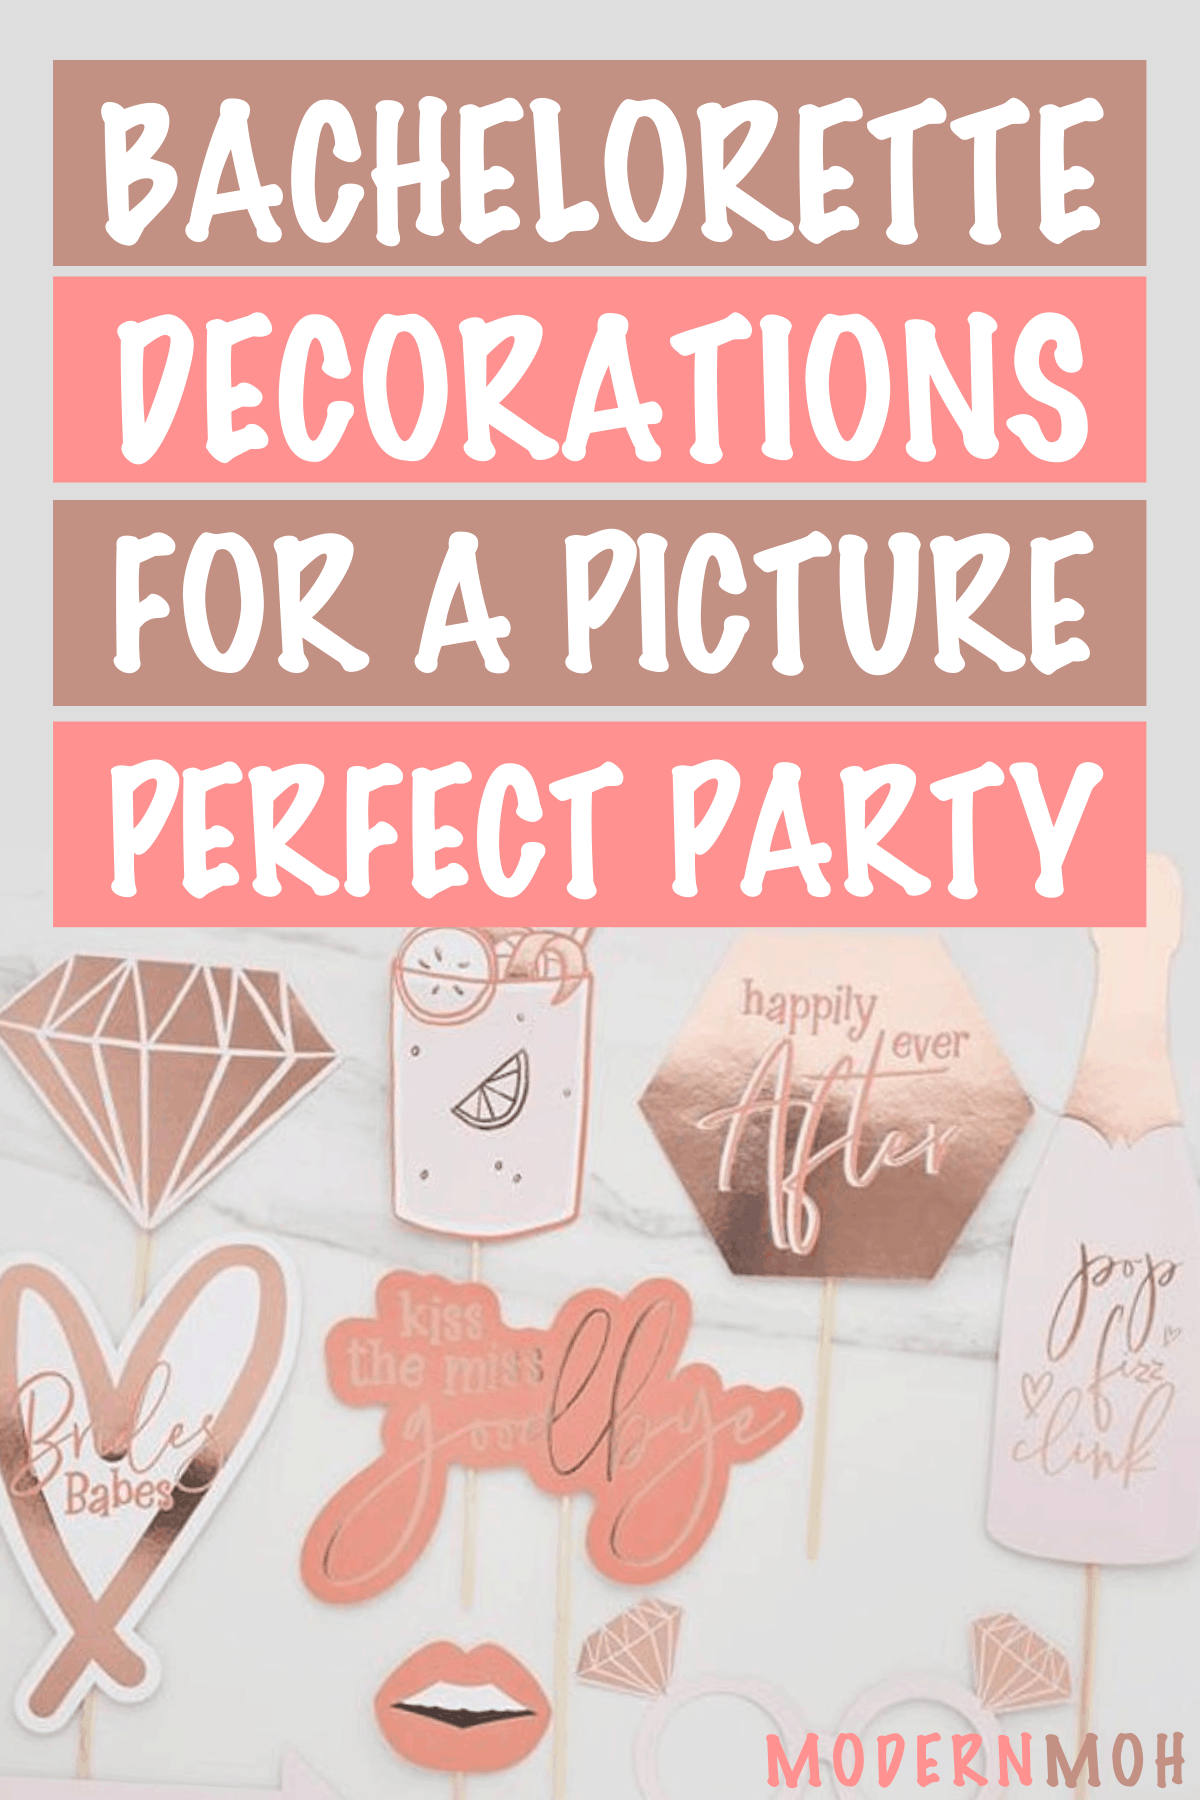 25 Bachelorette Party Decorations for a Photo-Worthy Weekend